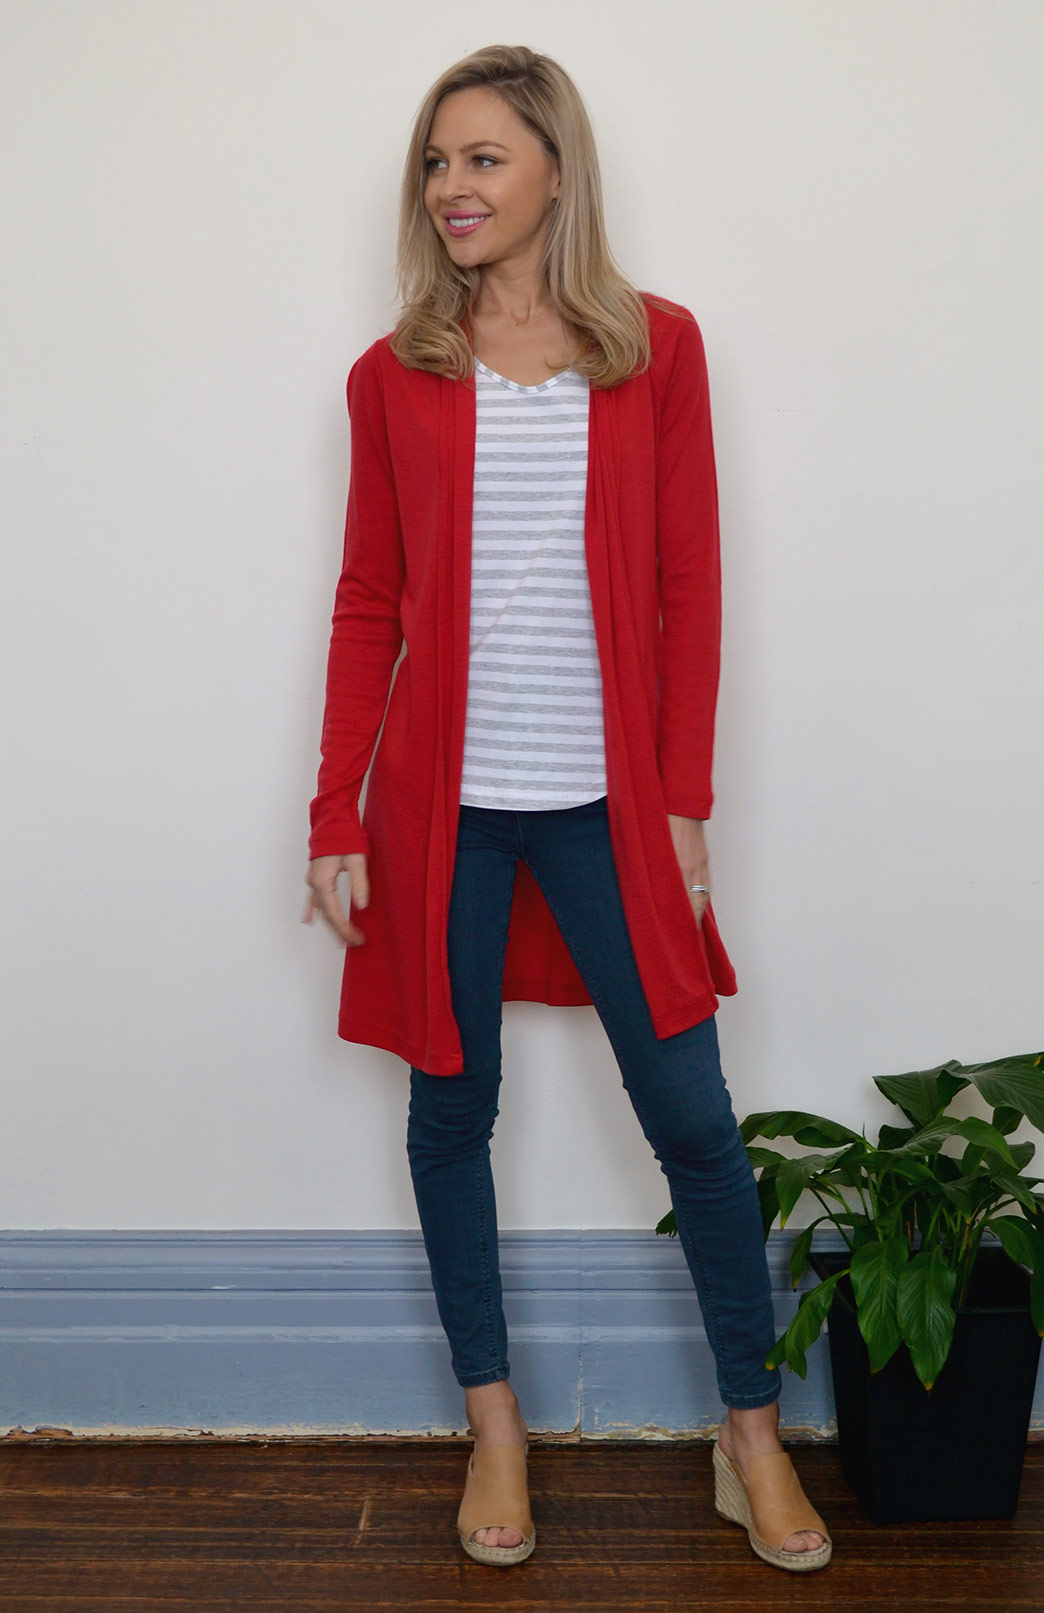 Drape Cardigan - Women's Flame Red Wool Drape Cardigan with no buttons or fastenings - Smitten Merino Tasmania Australia